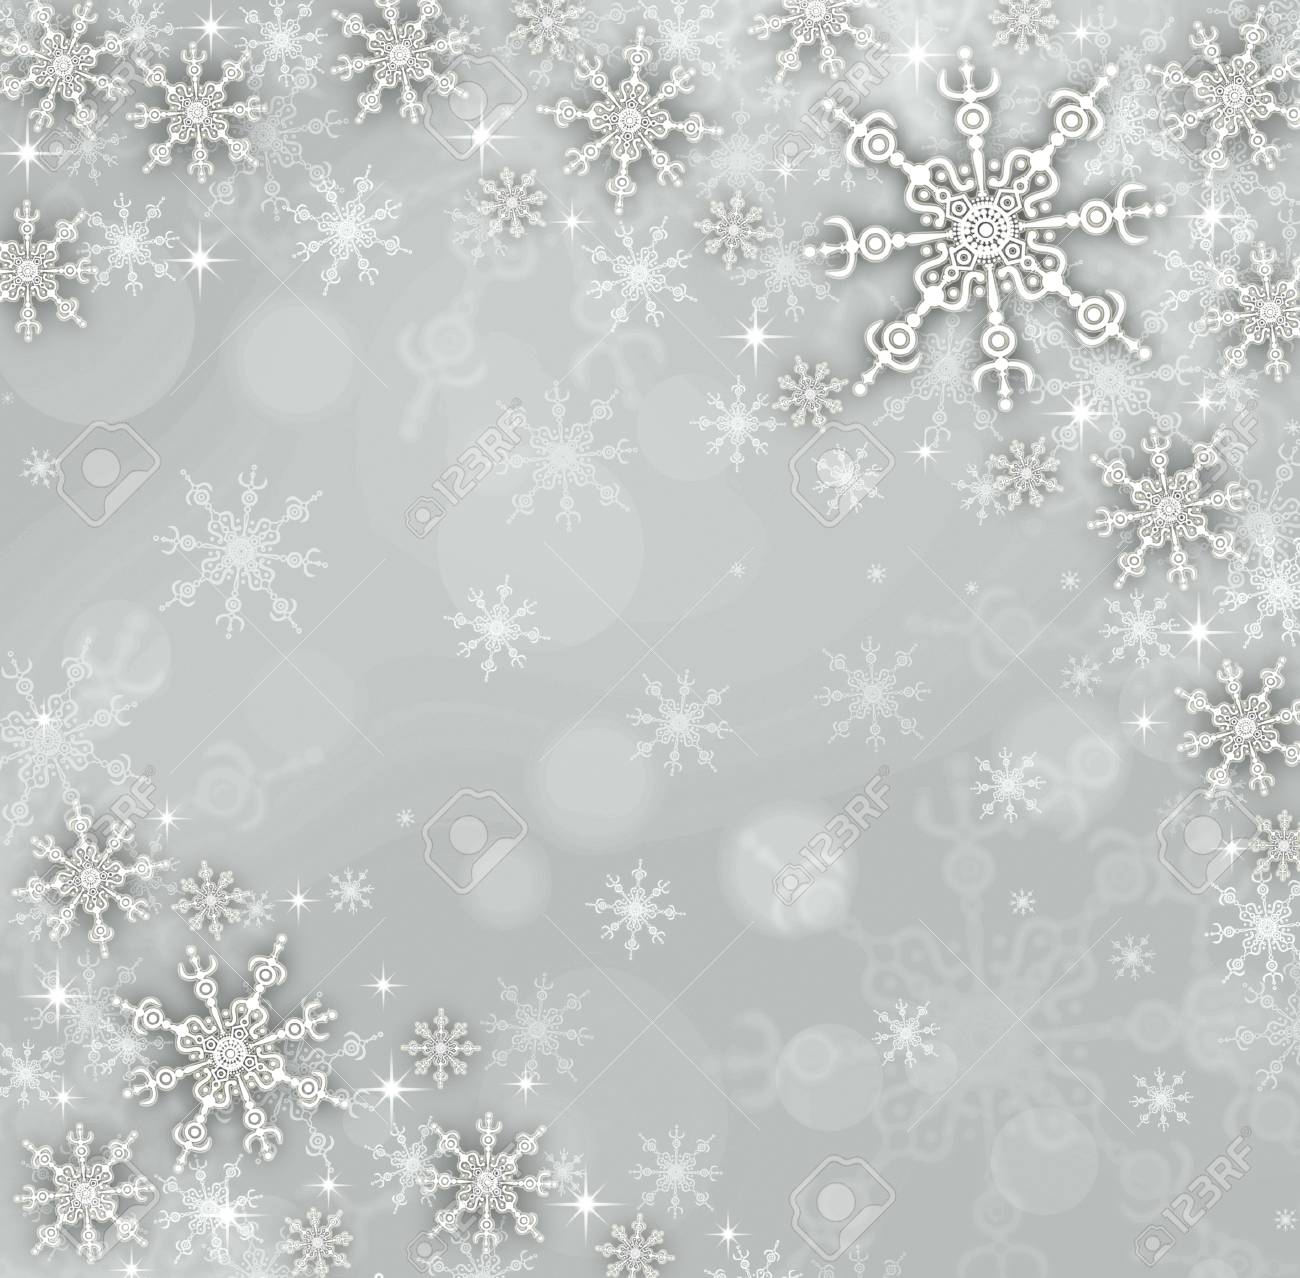 abstract Christmas background with snowflakes Stock Photo - 14749200